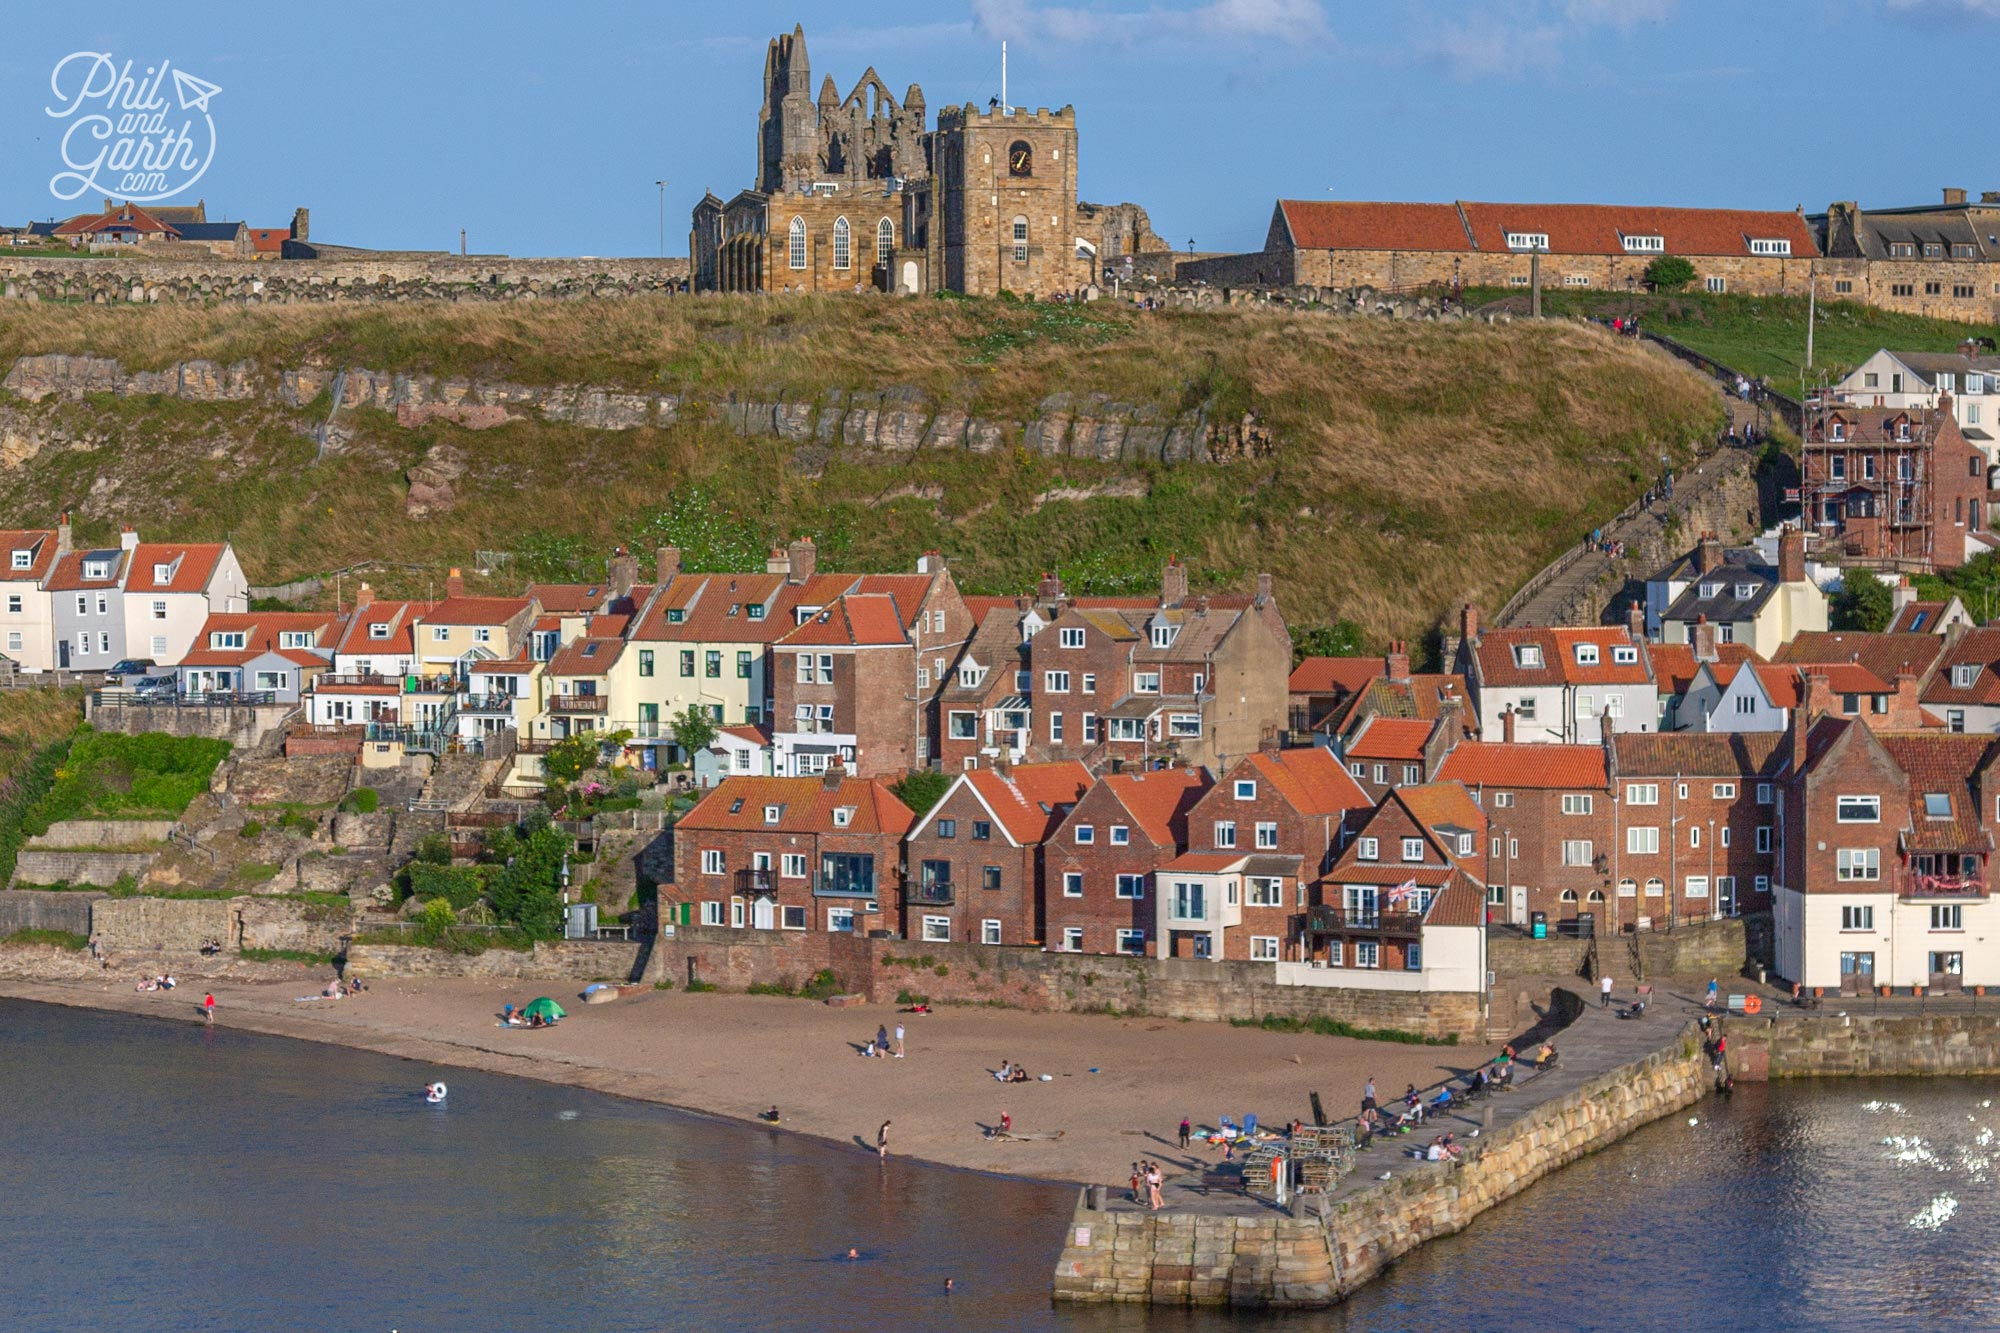 At the far end of Whitby harbour is a small beach called Tate Hill Beach